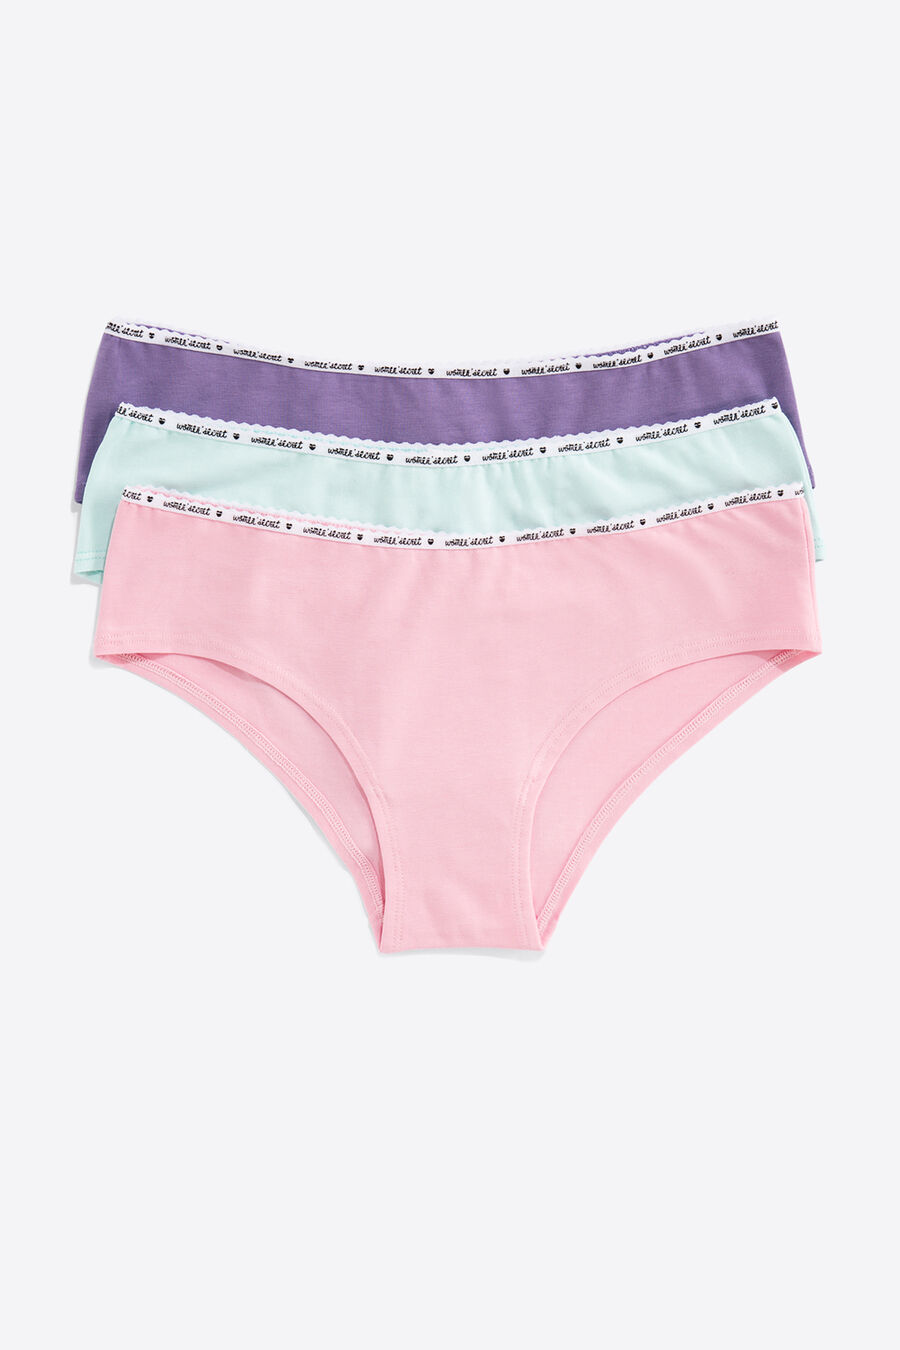 Pack of 7 hipster briefs with logo detail.